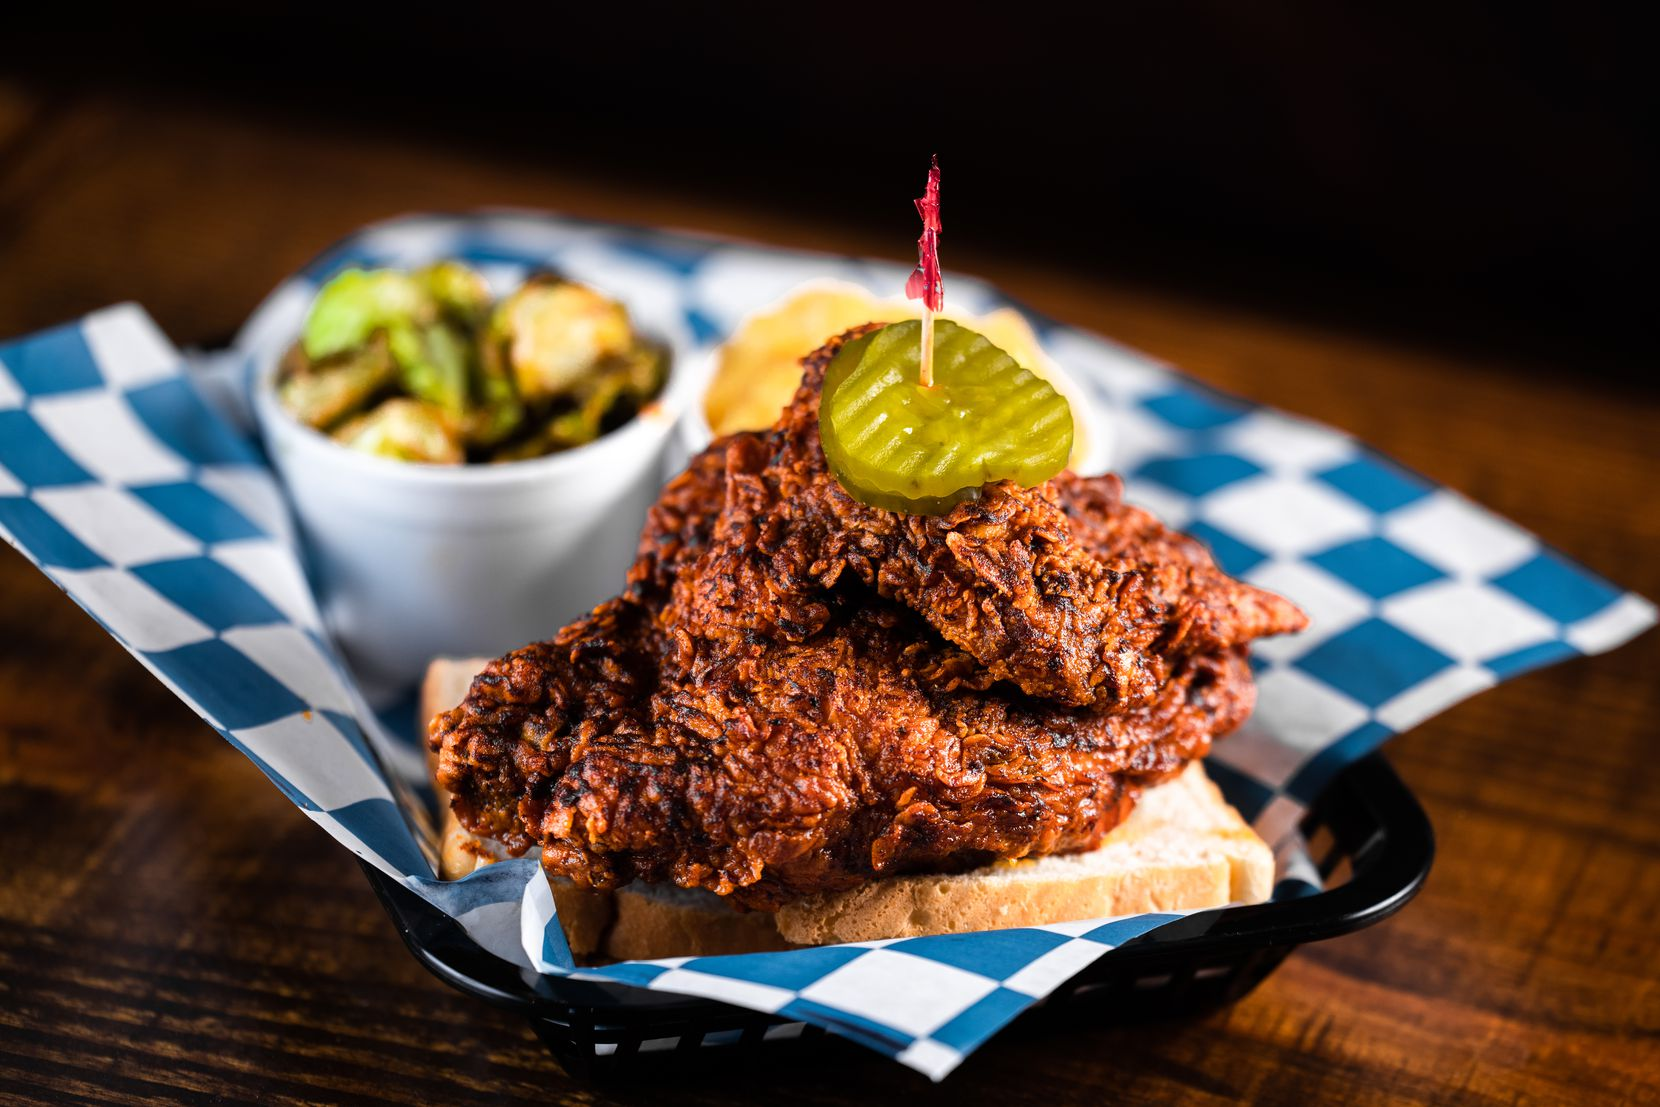 Palmer's Hot Chicken is offering its Haul it Home menu for the holidays this year featuring its Nashville hot chicken served with white bread and pickles.